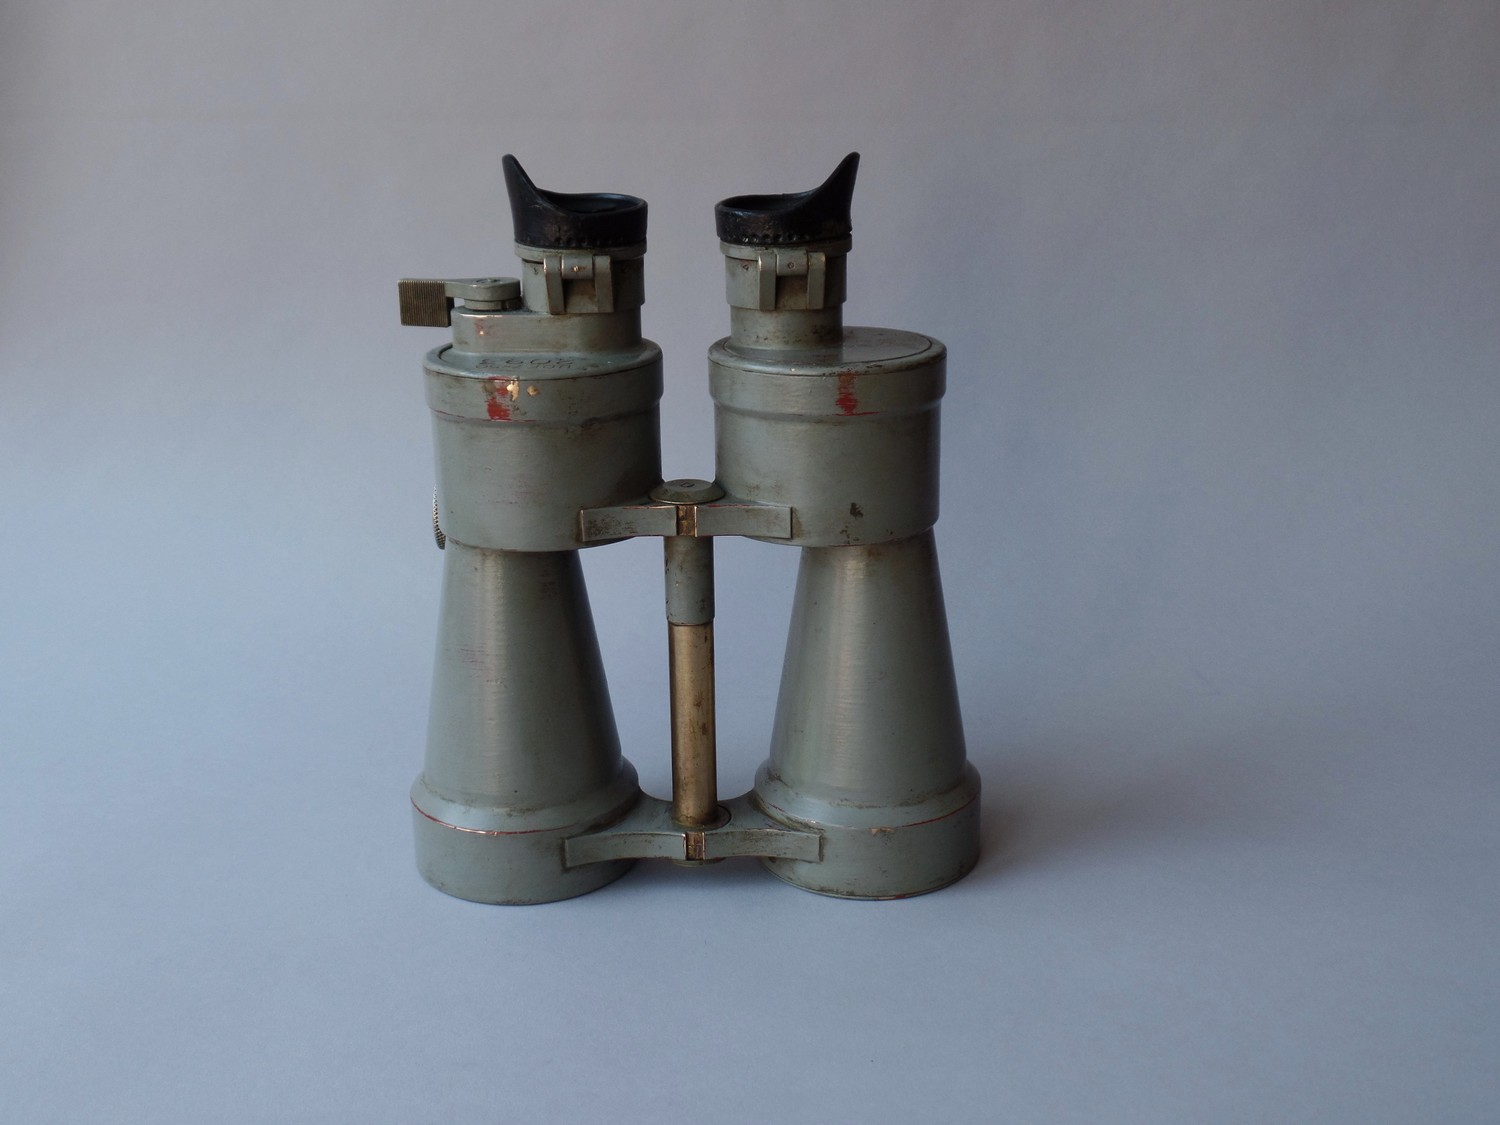 U.D.F - 7 X 50 U - BOAT CONNING TOWER BINOCULARS- CARL ZEISS CA. 1945